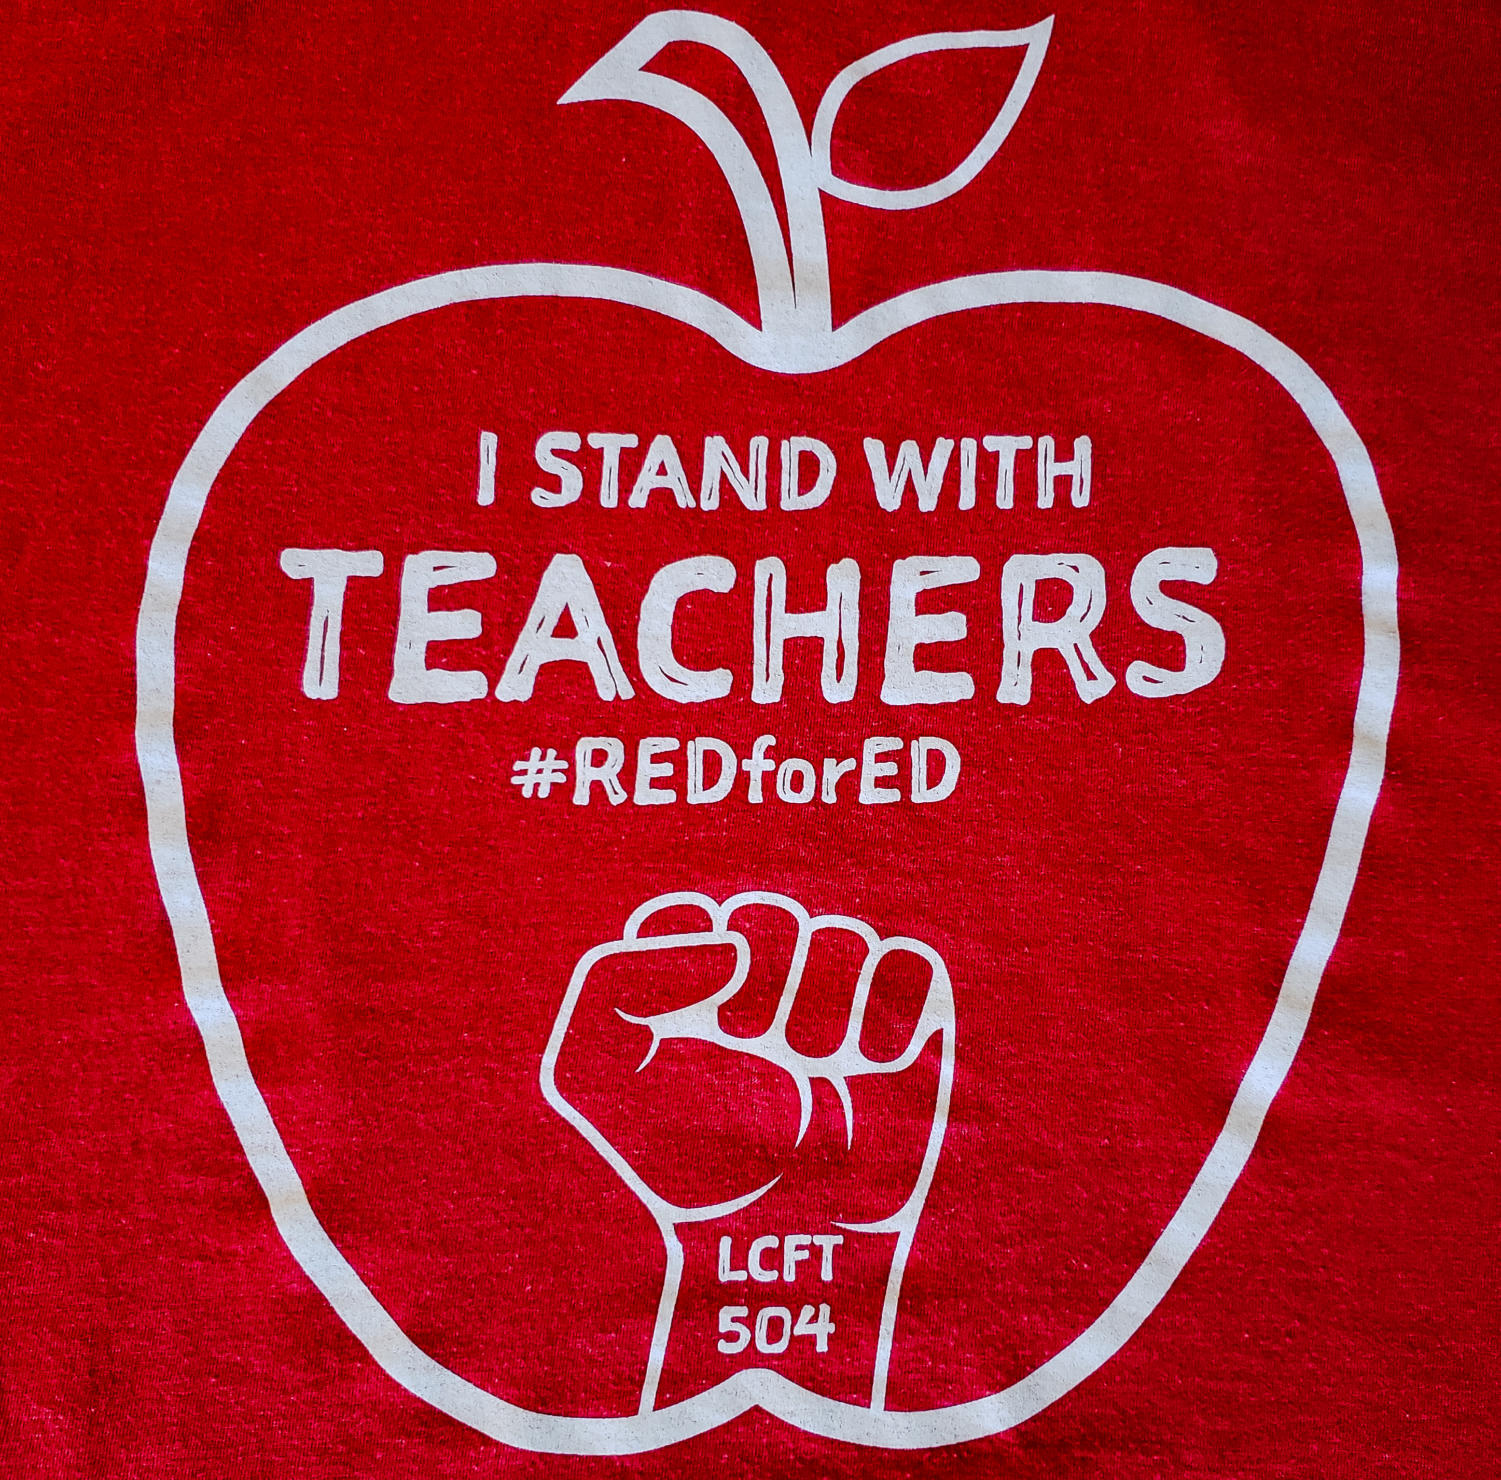 On negotiation days, teachers wear shirts with this logo. Picture taken by Charlie Newman